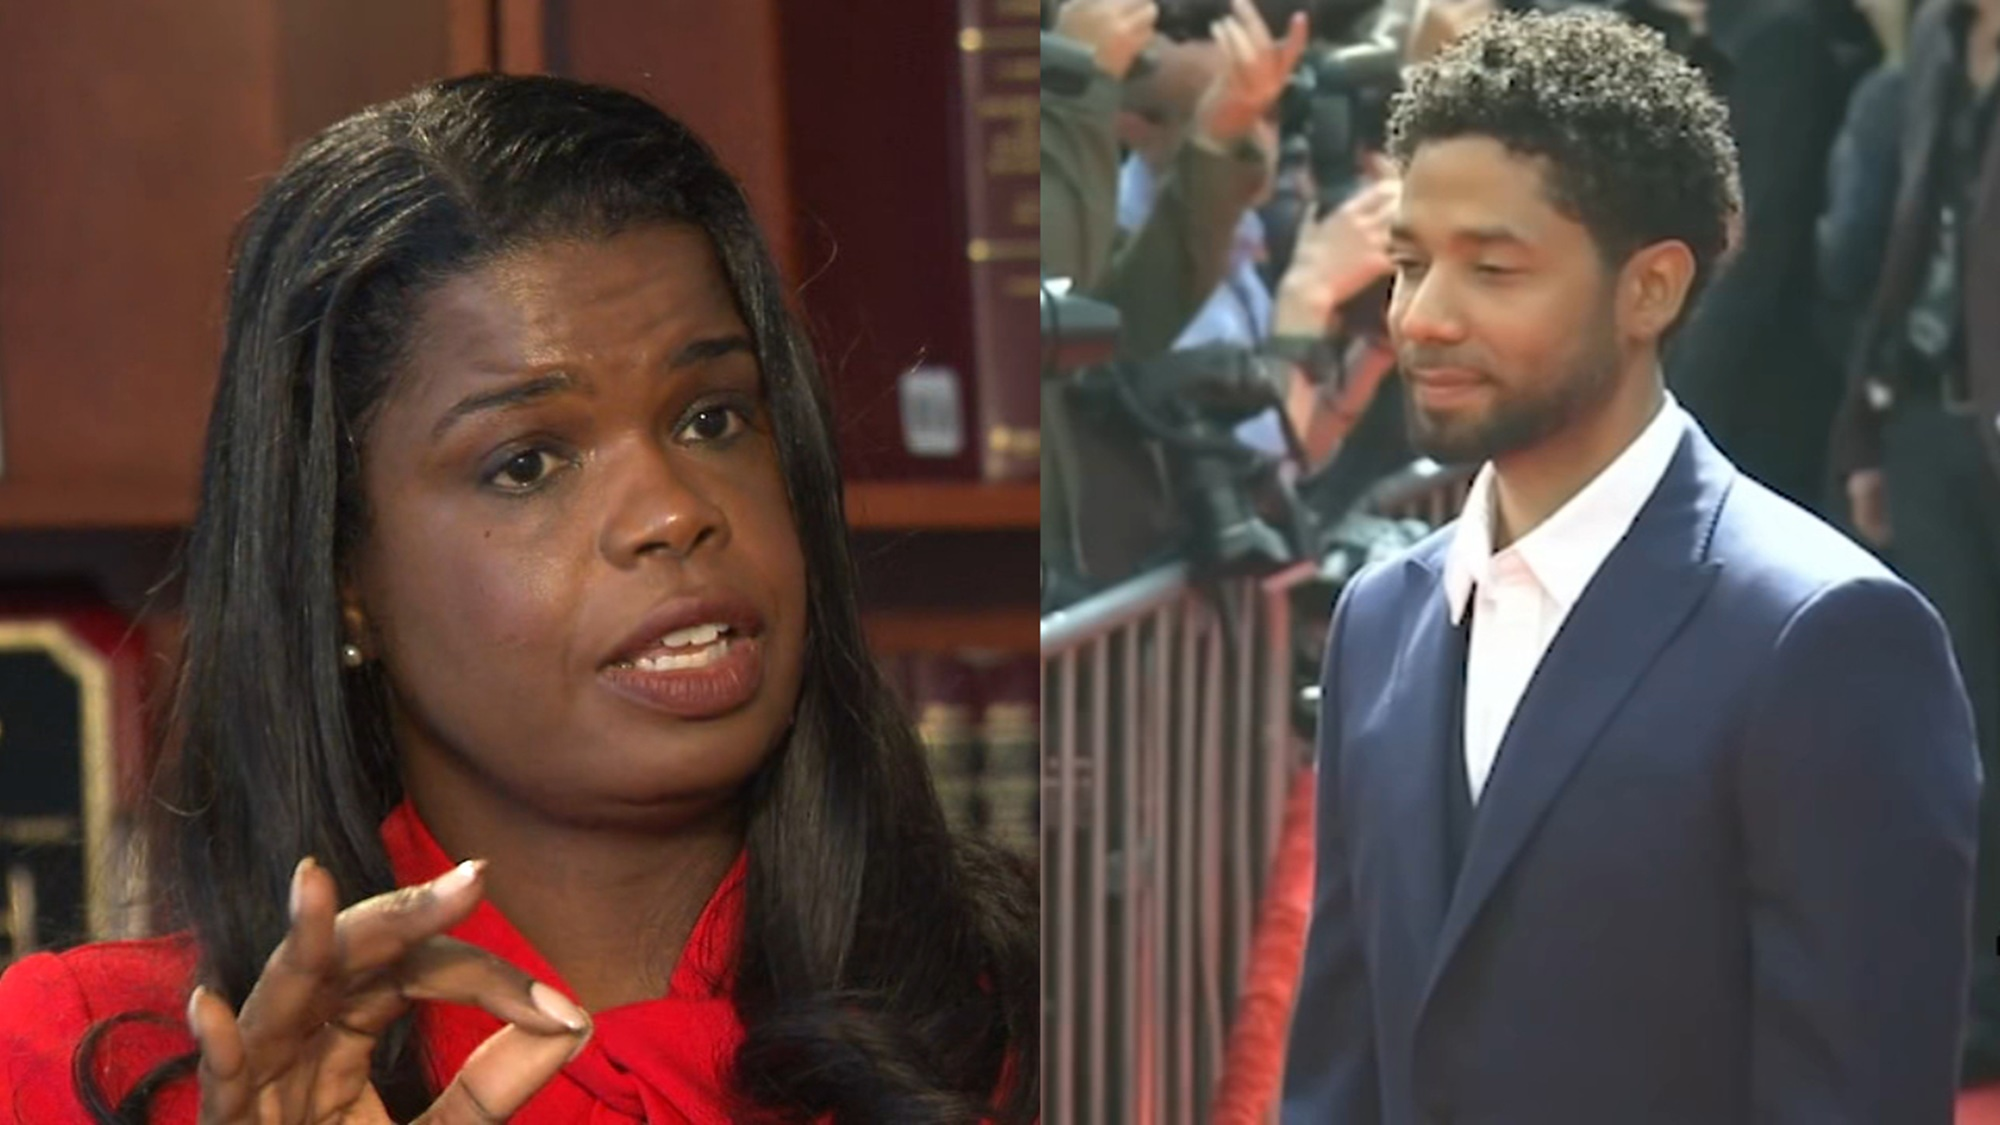 Kim Foxx Jussie Smollett Charges Dropped